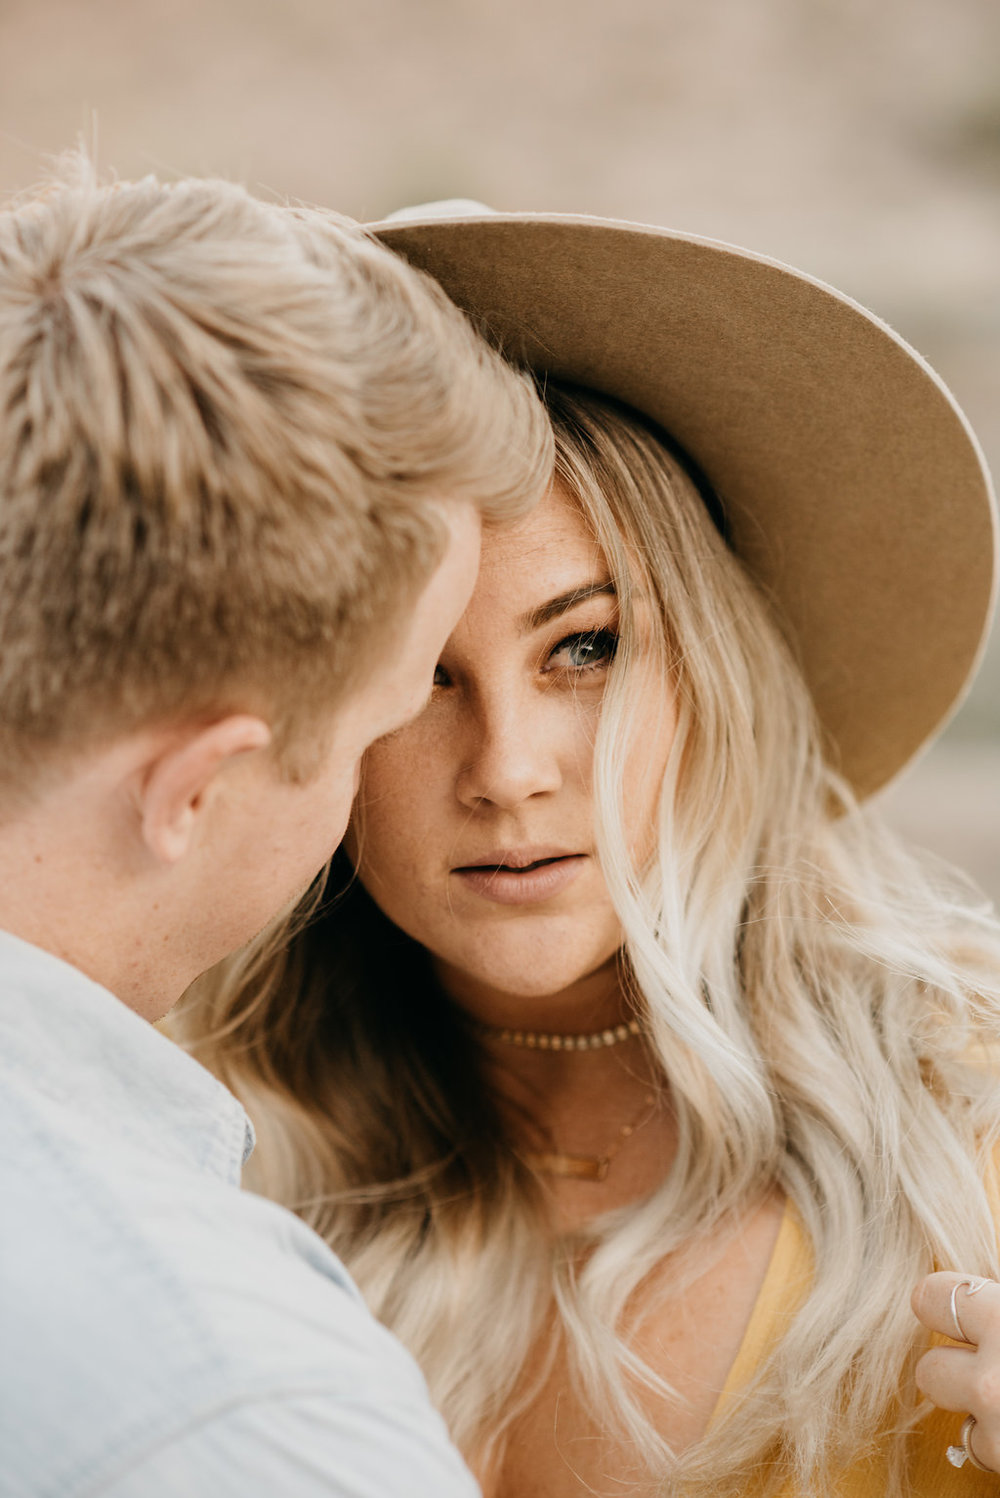 Arizona Engagement / Desert Engagement / Arizona Adventure / Adventure Engagement Session / Outdoor Adventure / Arizona Wedding Photographer / Outdoor Engagement